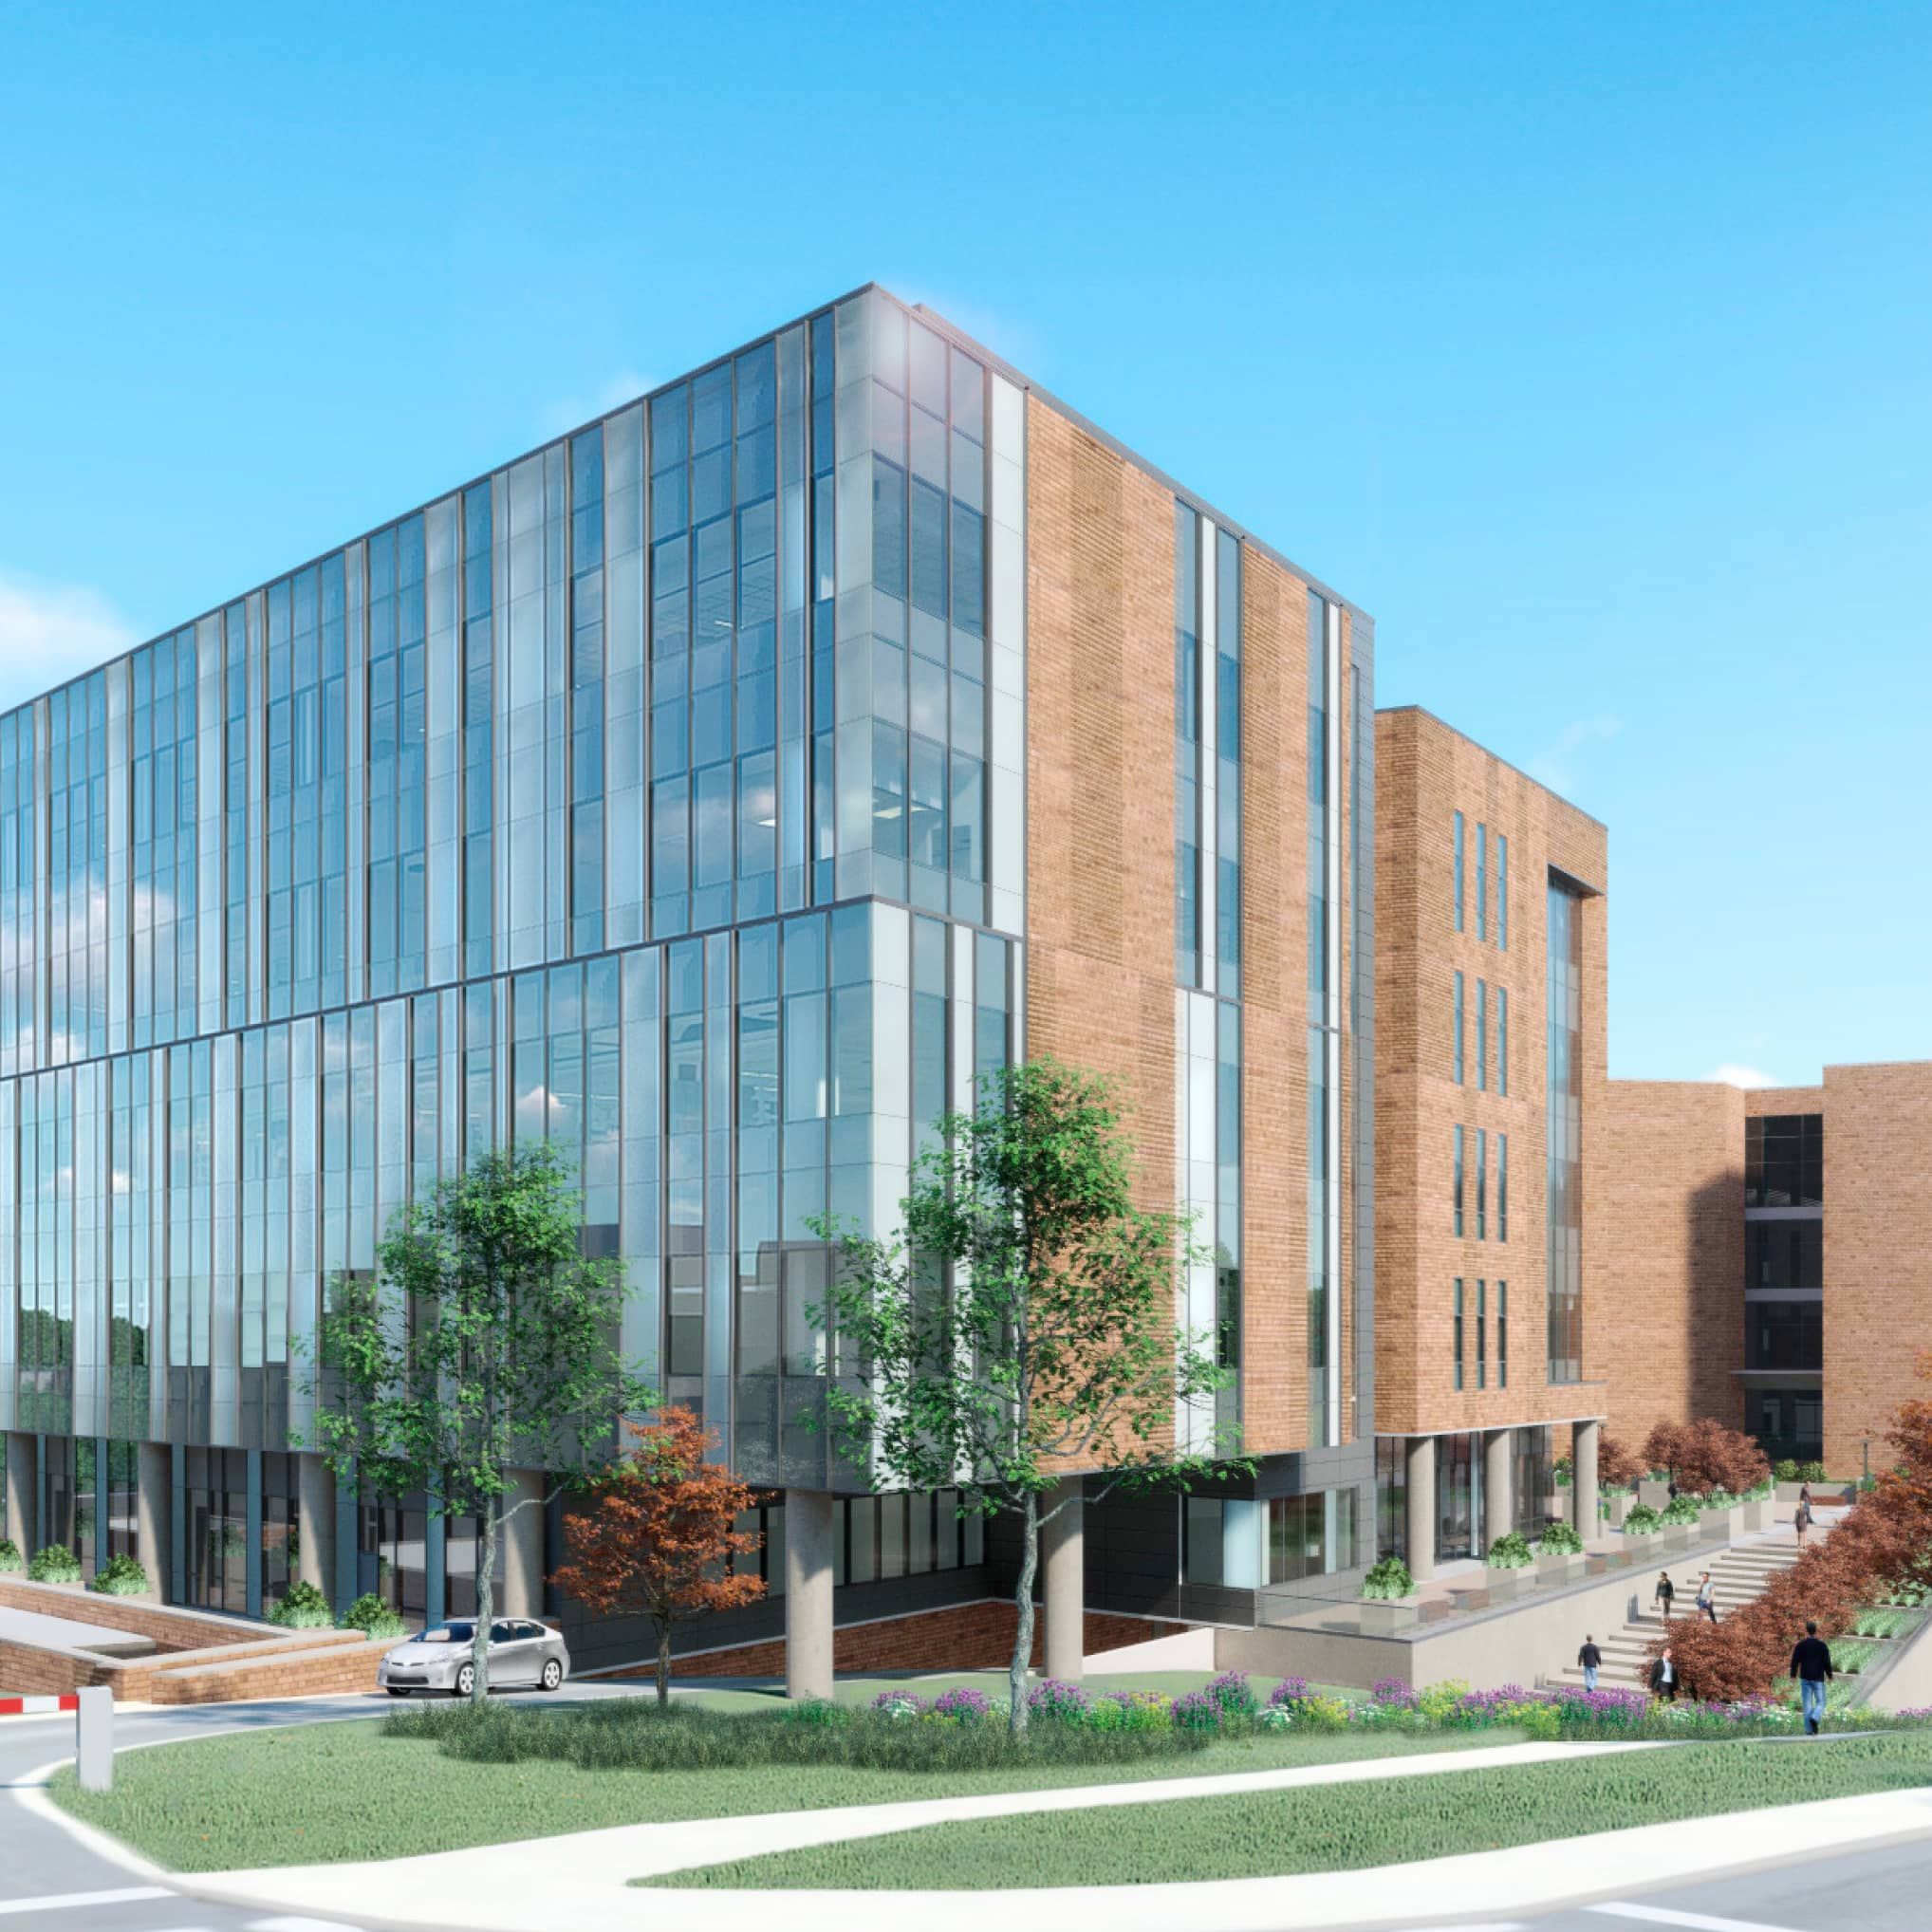 U.S. Military's Health Sciences University Looks to Expand its Campus and Reach with HKS' Support